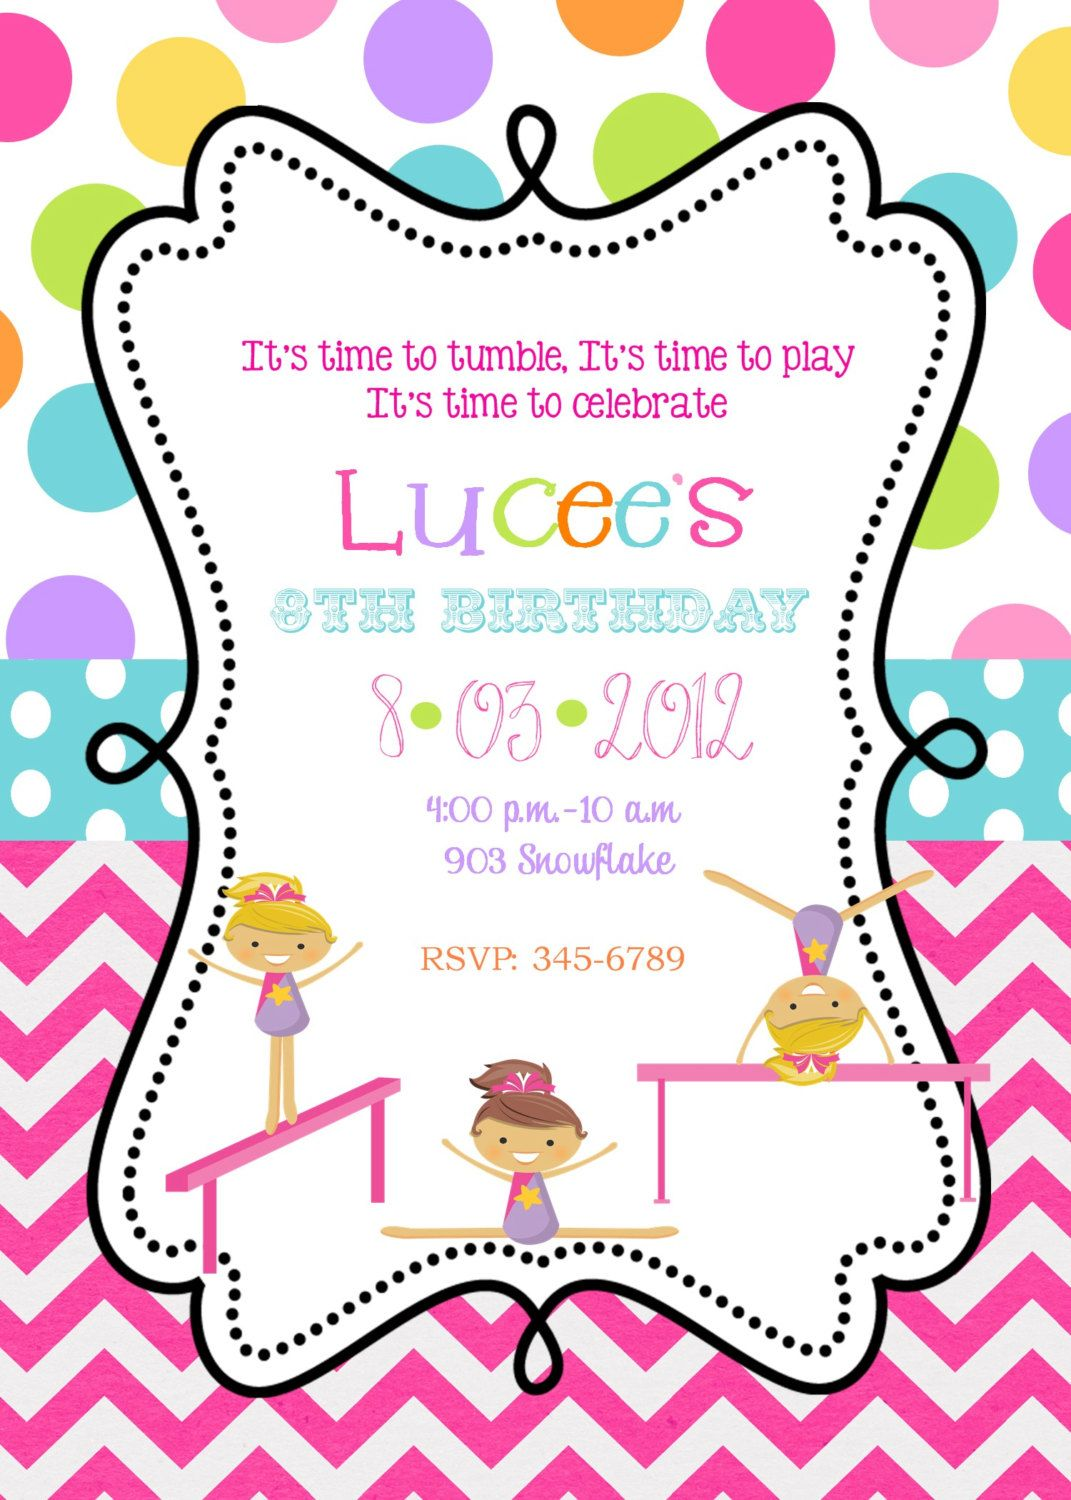 Gymnastics Invitations Tumble Jump Flip Birthday Party – Gymnastics Party Invitation